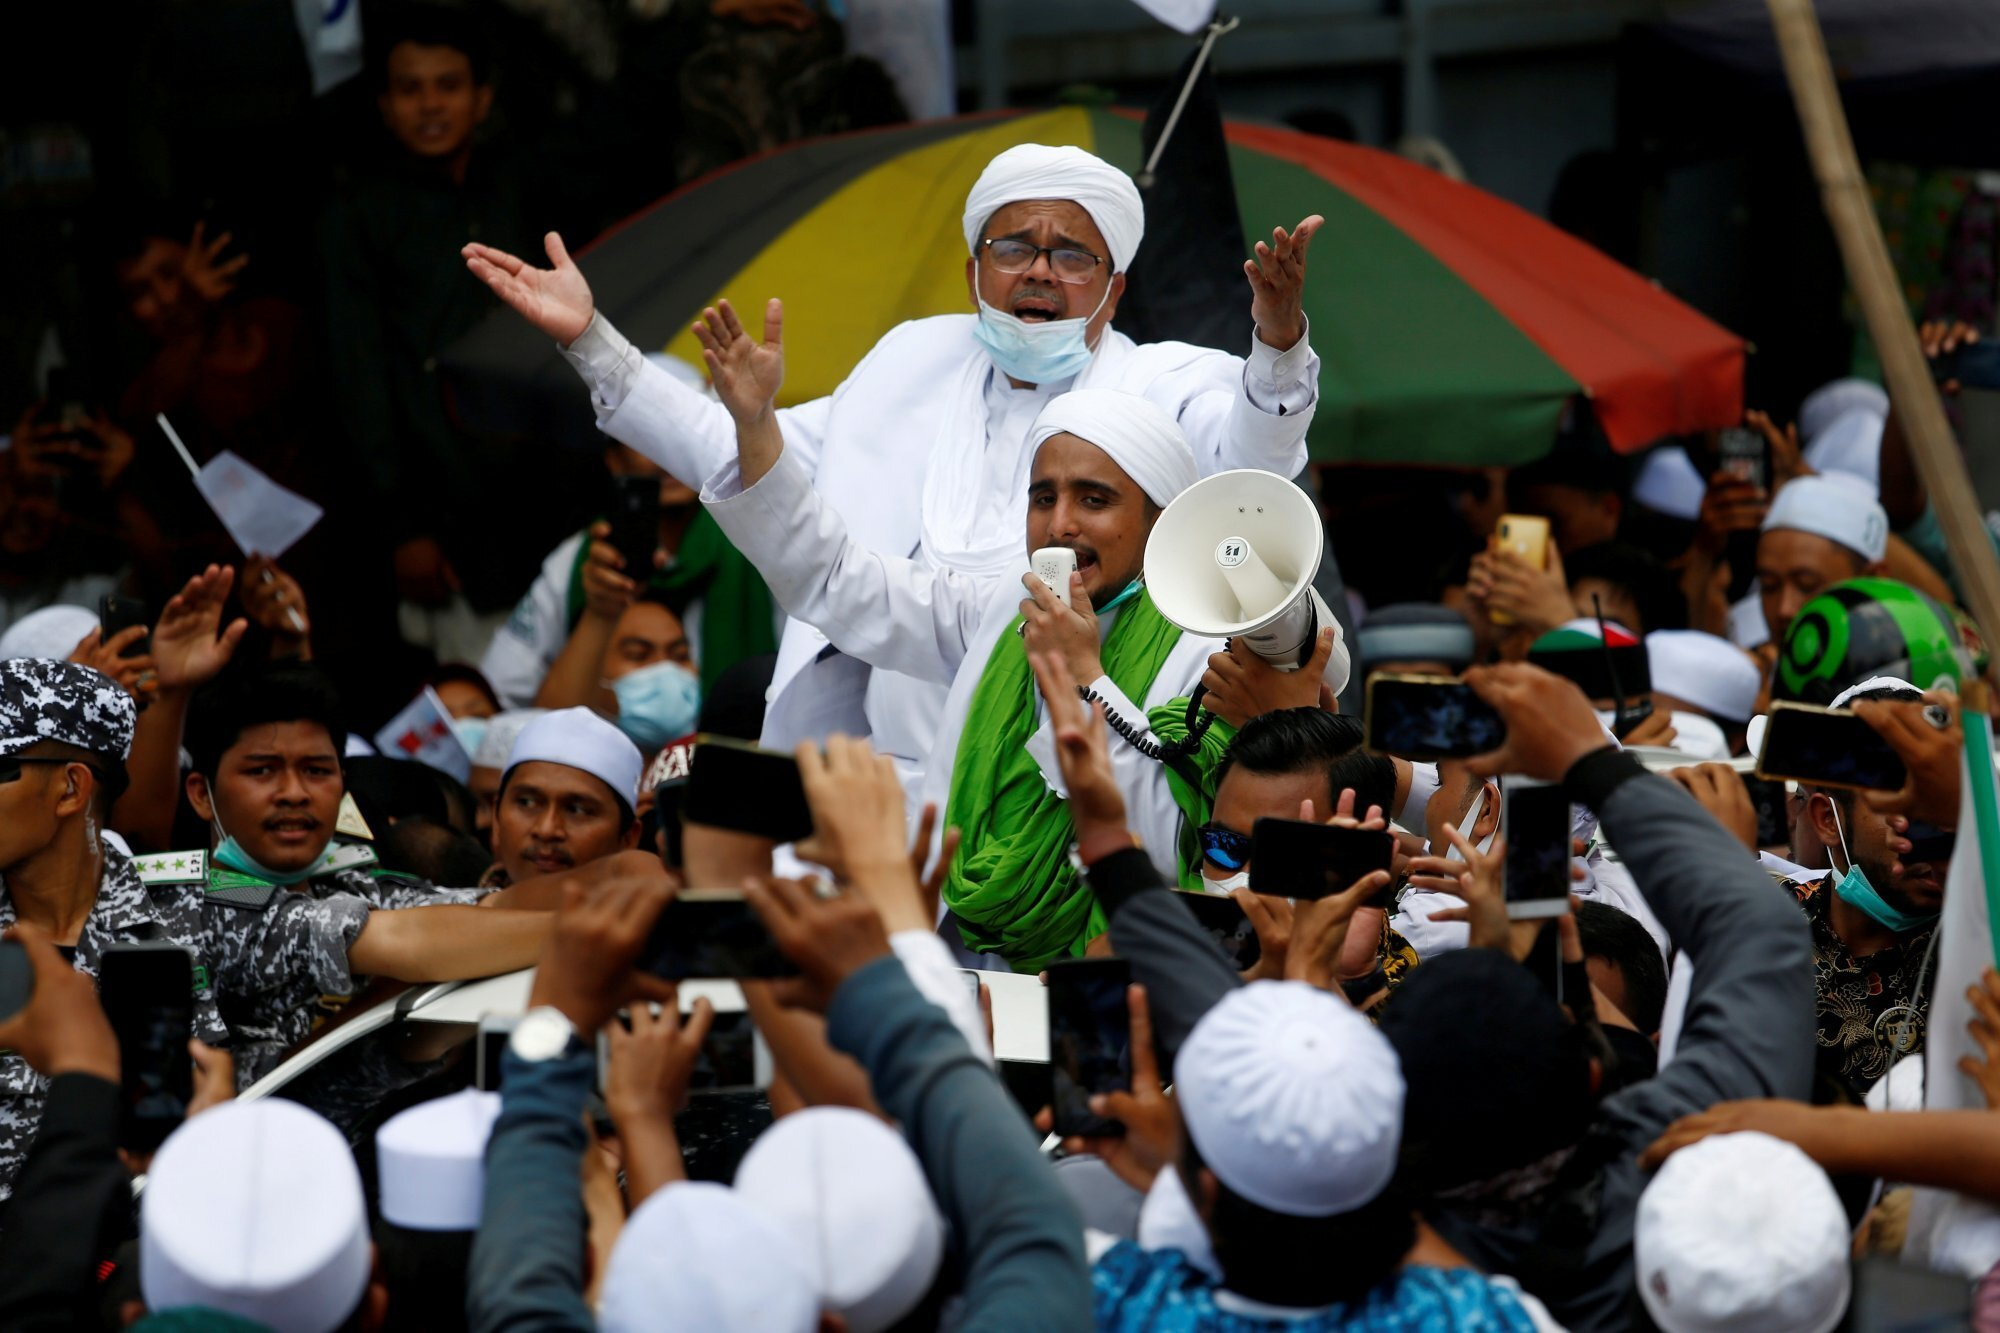 Rizieq Shihab, the leader of the banned Islamic Defenders Front (FPI), was arrested last year for violating Covid-19 rules. Photo: Reuters